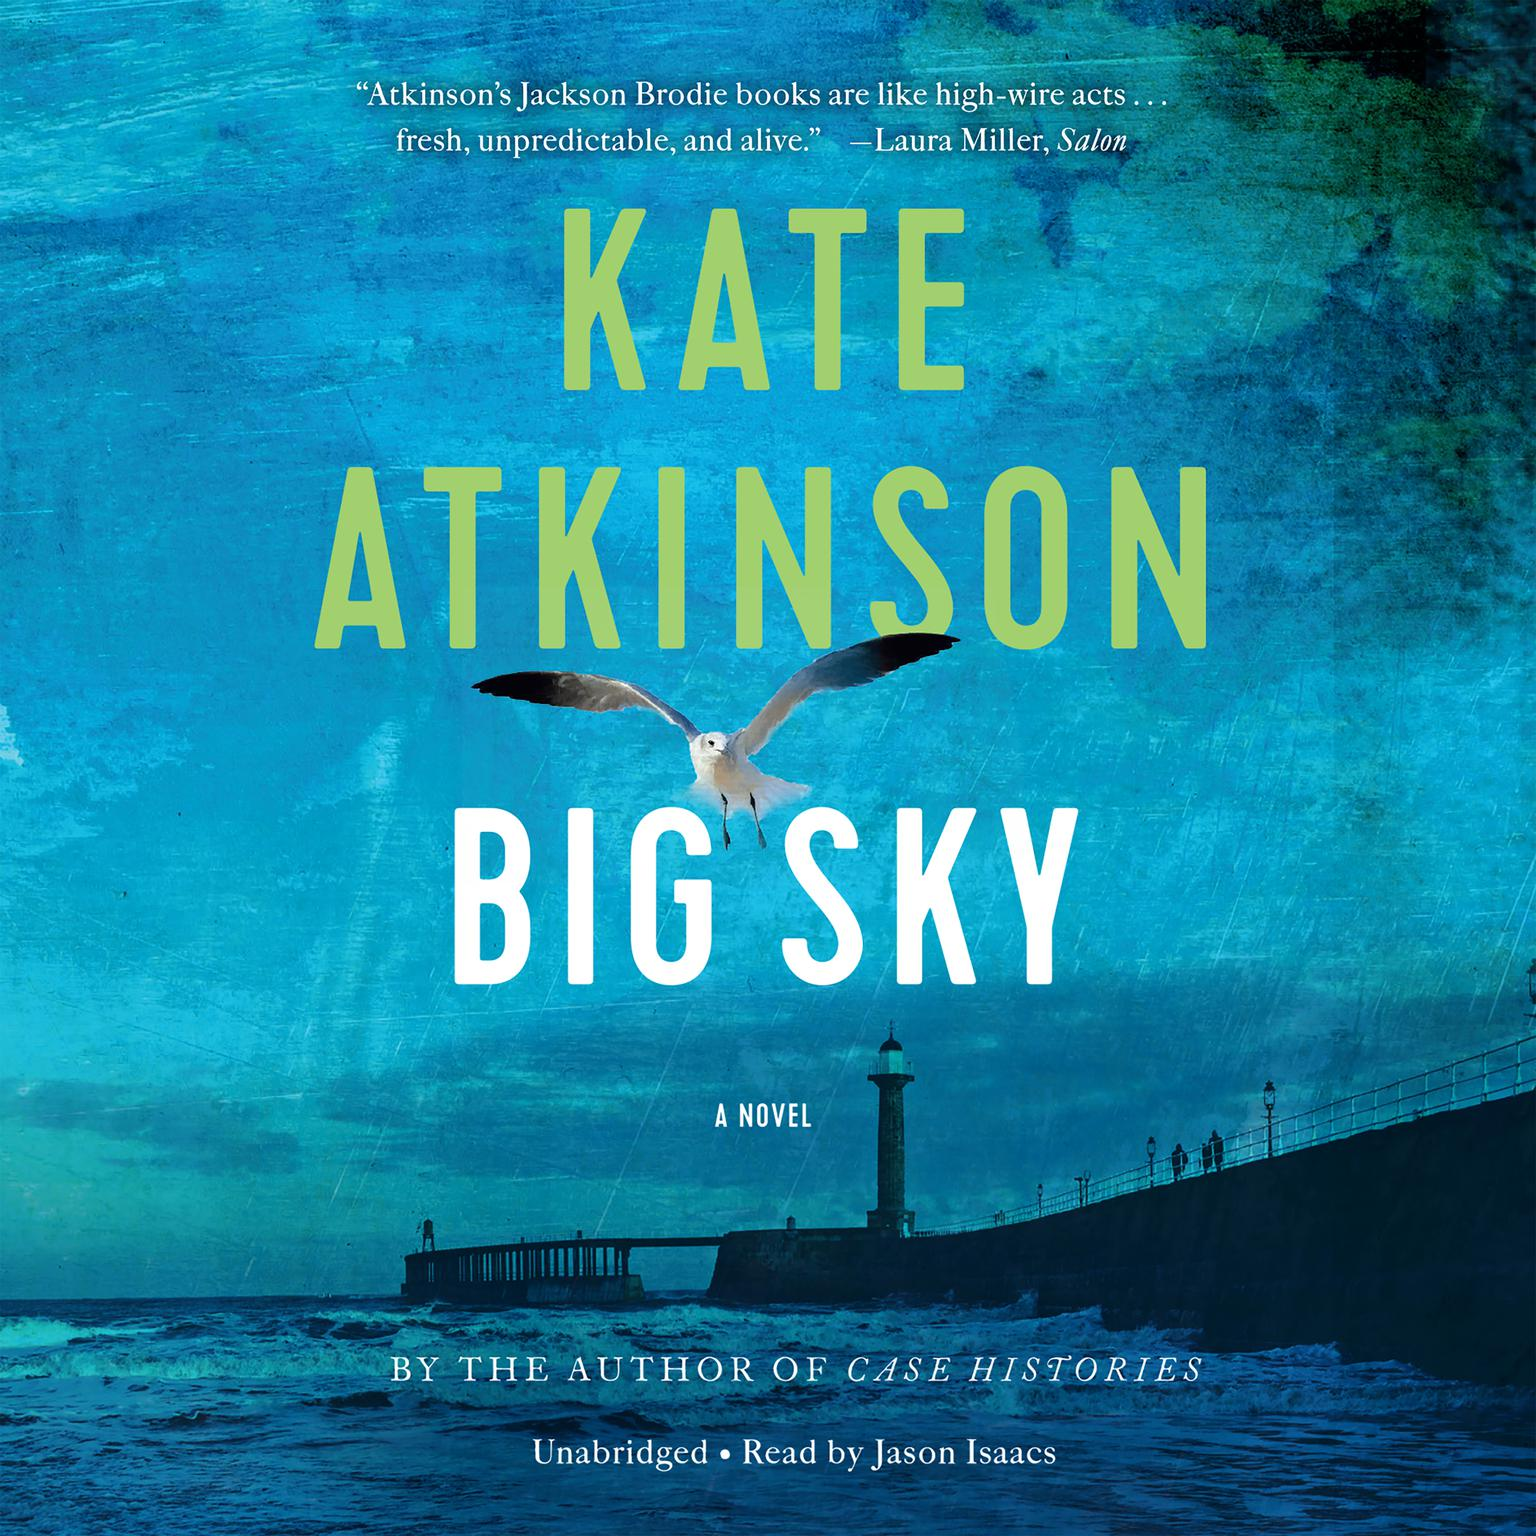 The book cover shows a turquoise sky and ocean, with a long pier extending into the water with a lighthouse and bridge at the end, and several people walking on the pier.  A seagull with wings extended is aloft in the foreground.